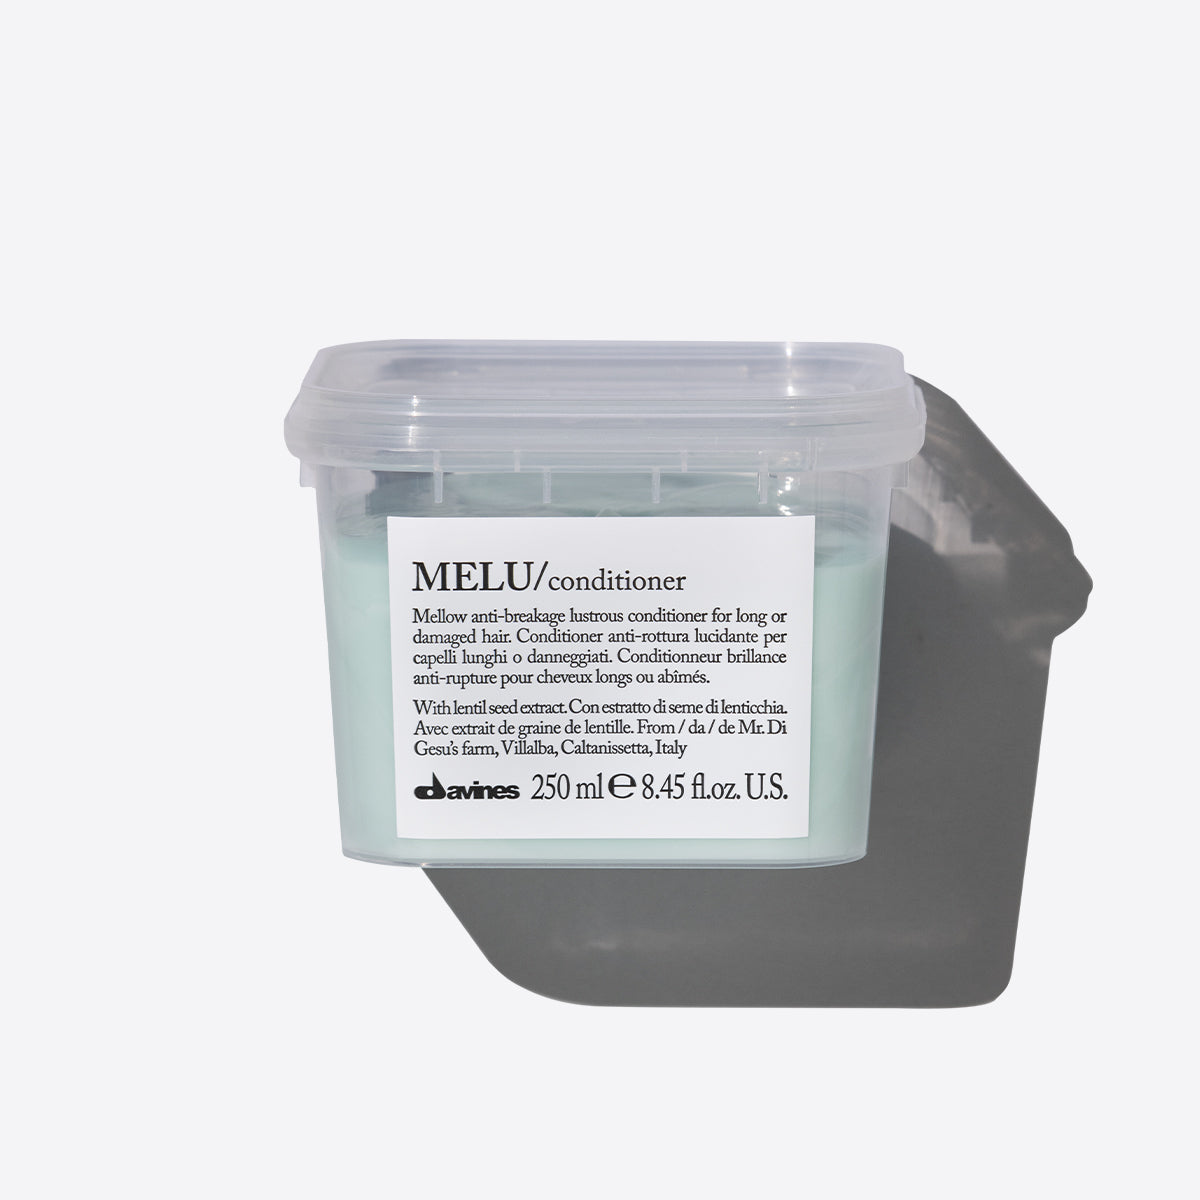 MELU Conditioner 1  250 ml / 0 fl.oz.Davines